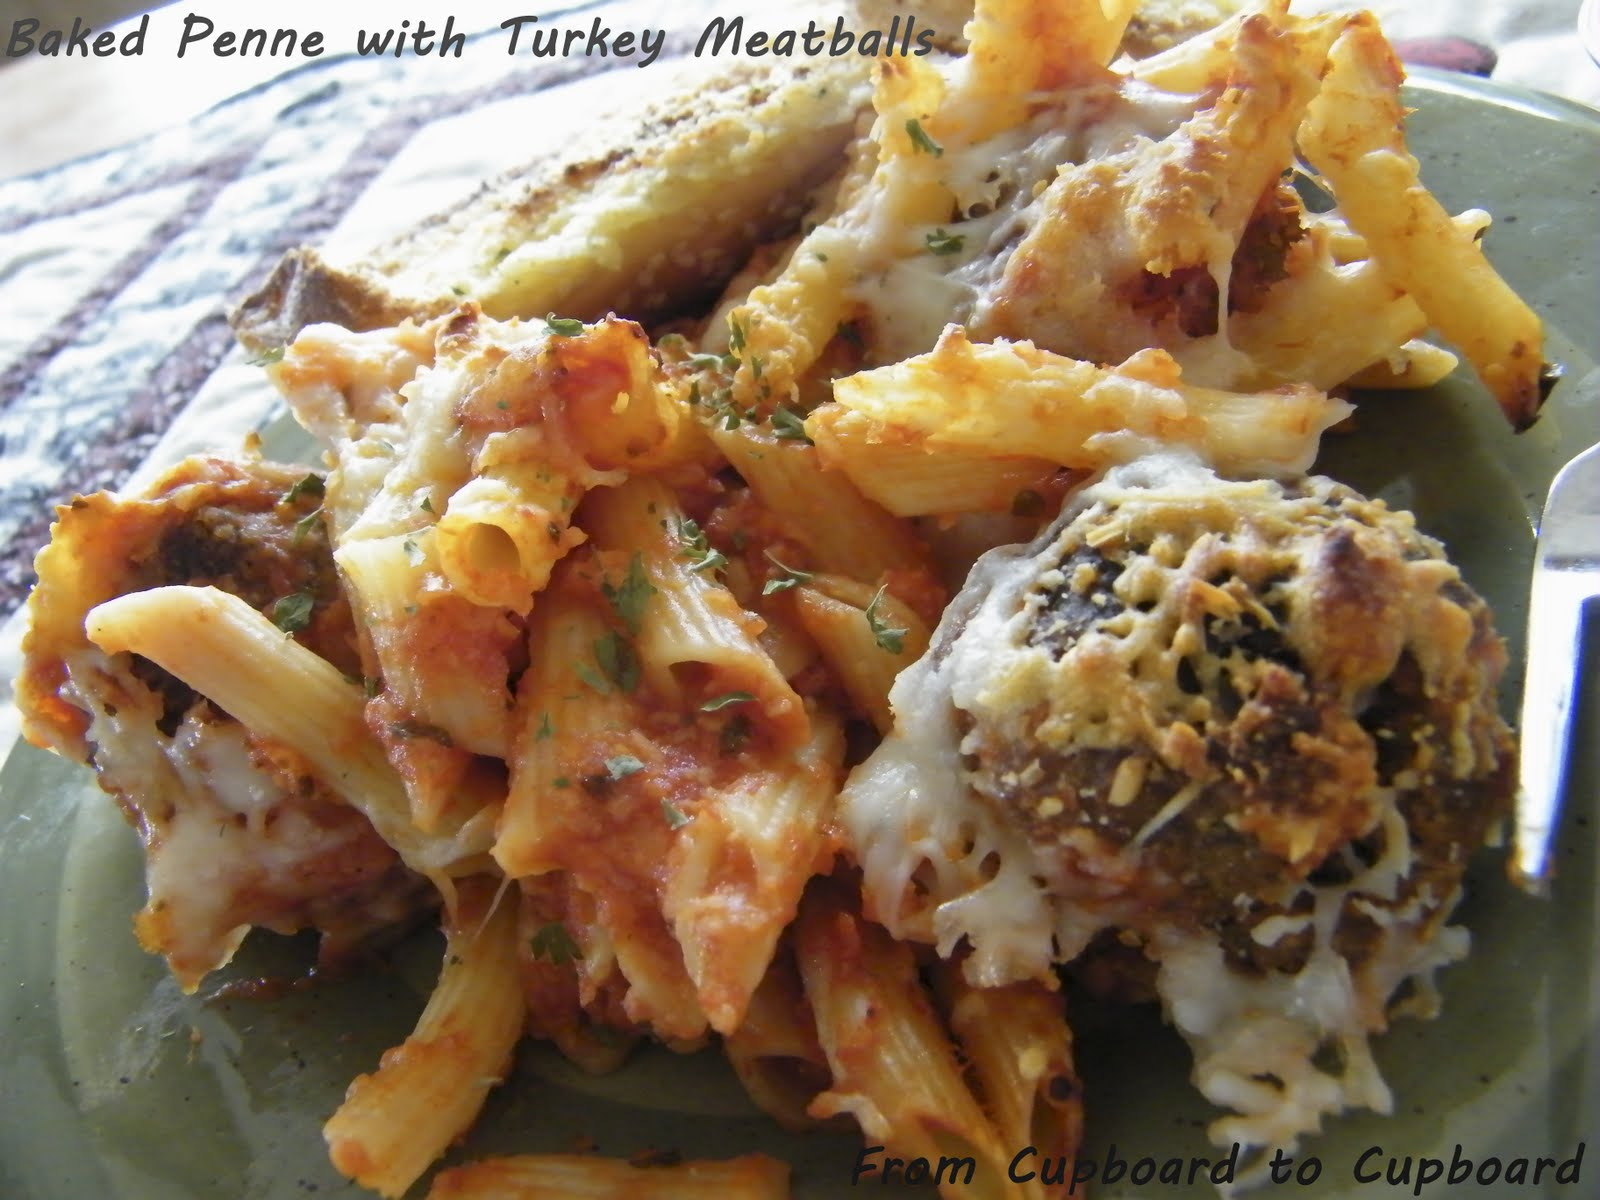 ... : Menu Board Monday Edition #10: Baked Penne with Turkey Meatballs